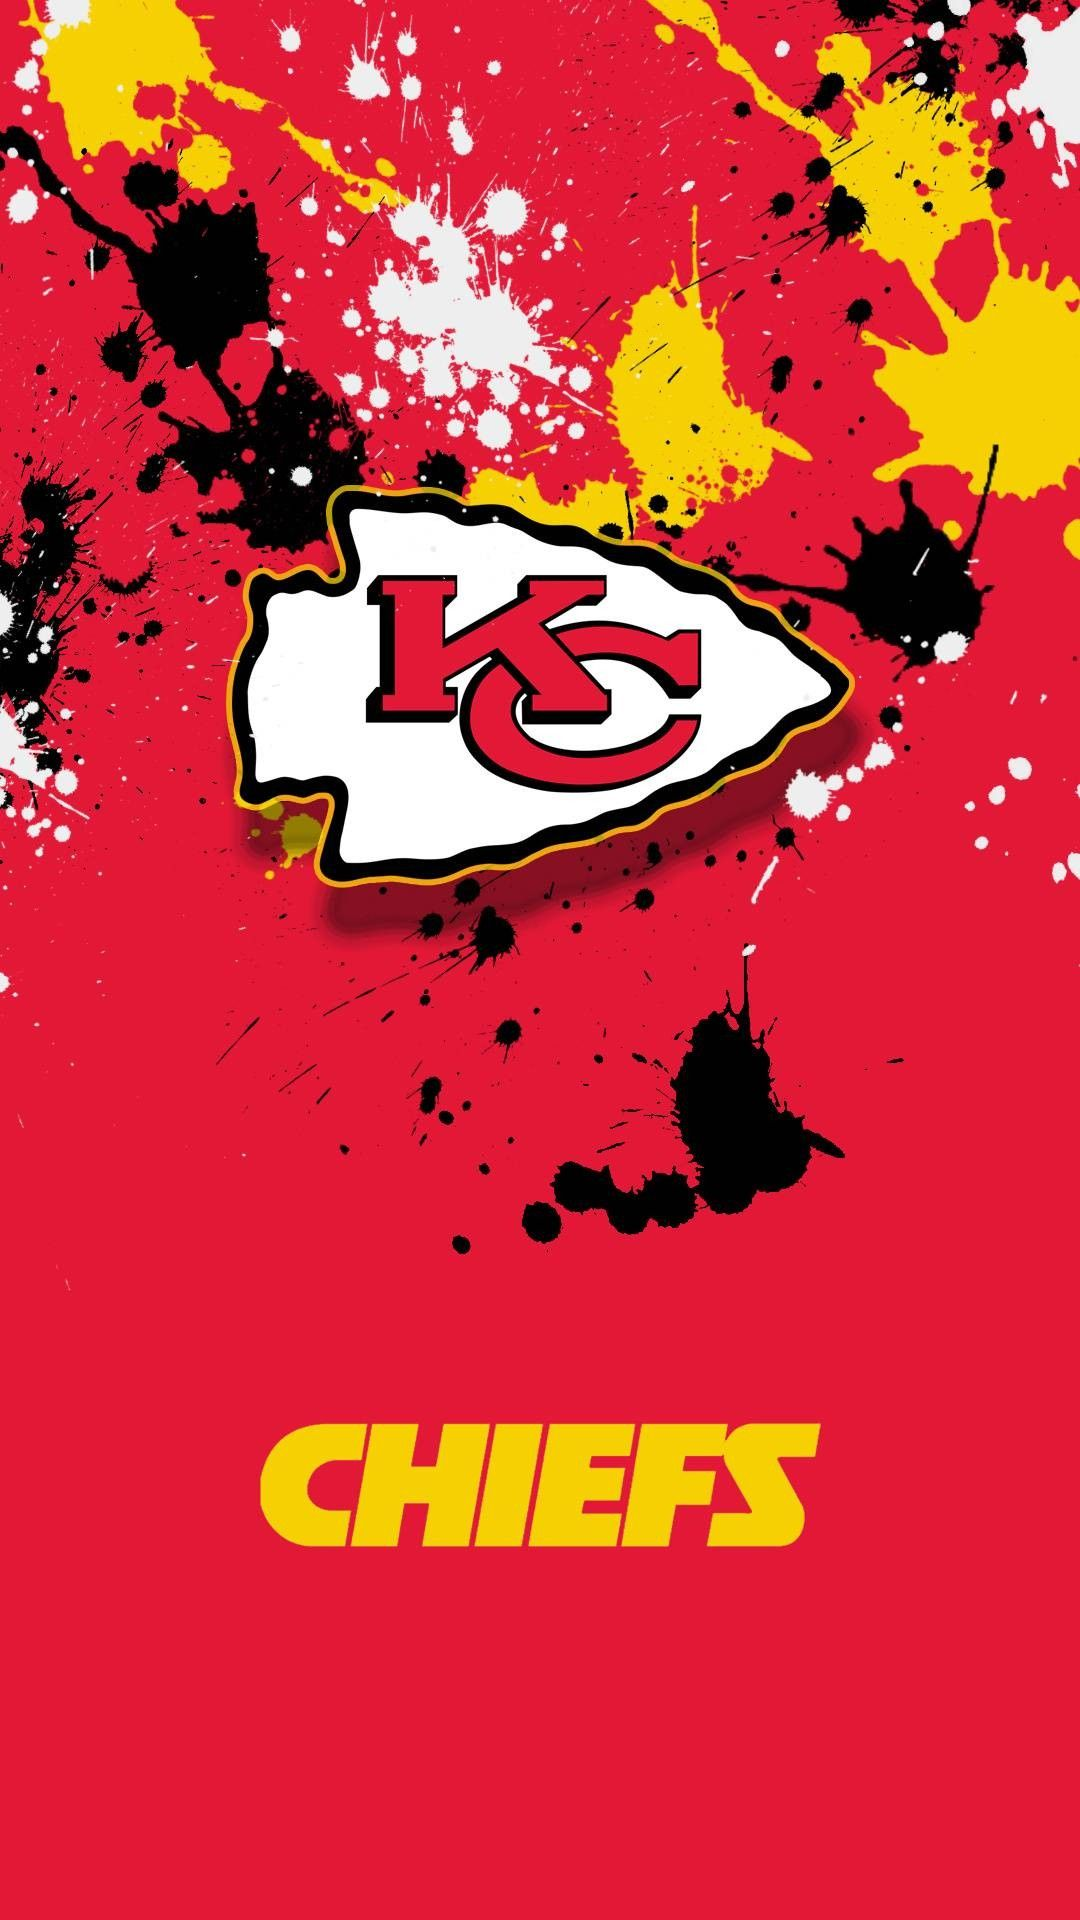 Pin By Kathy Veatch On Kansas City Chiefs Chiefs Wallpaper Kansas City Chiefs Kansas City Chiefs Football